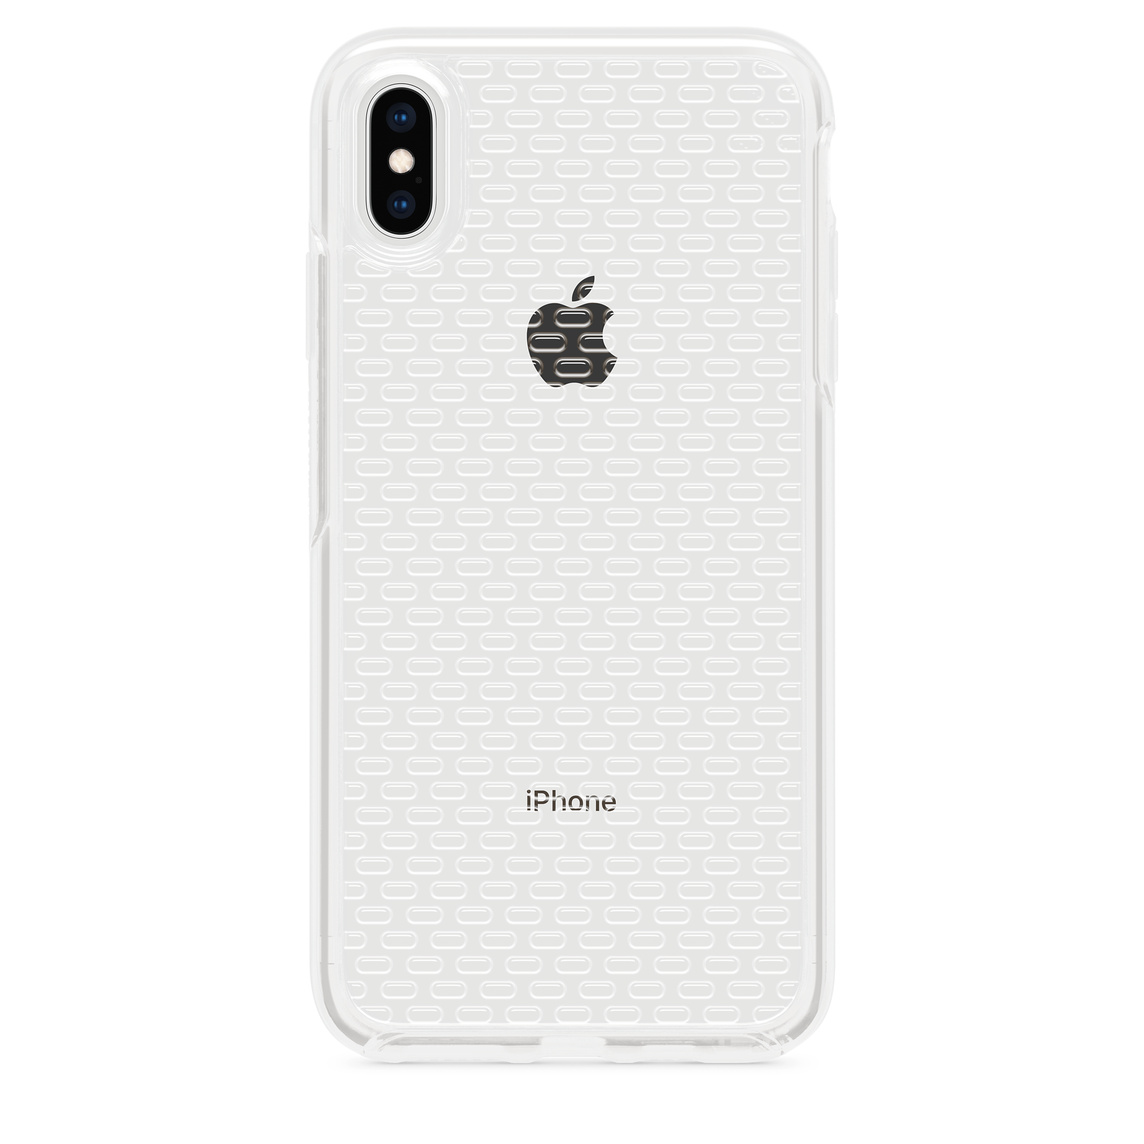 separation shoes 9e5f0 b3f9e OtterBox Vue Series Case for iPhone XS Max - Clear